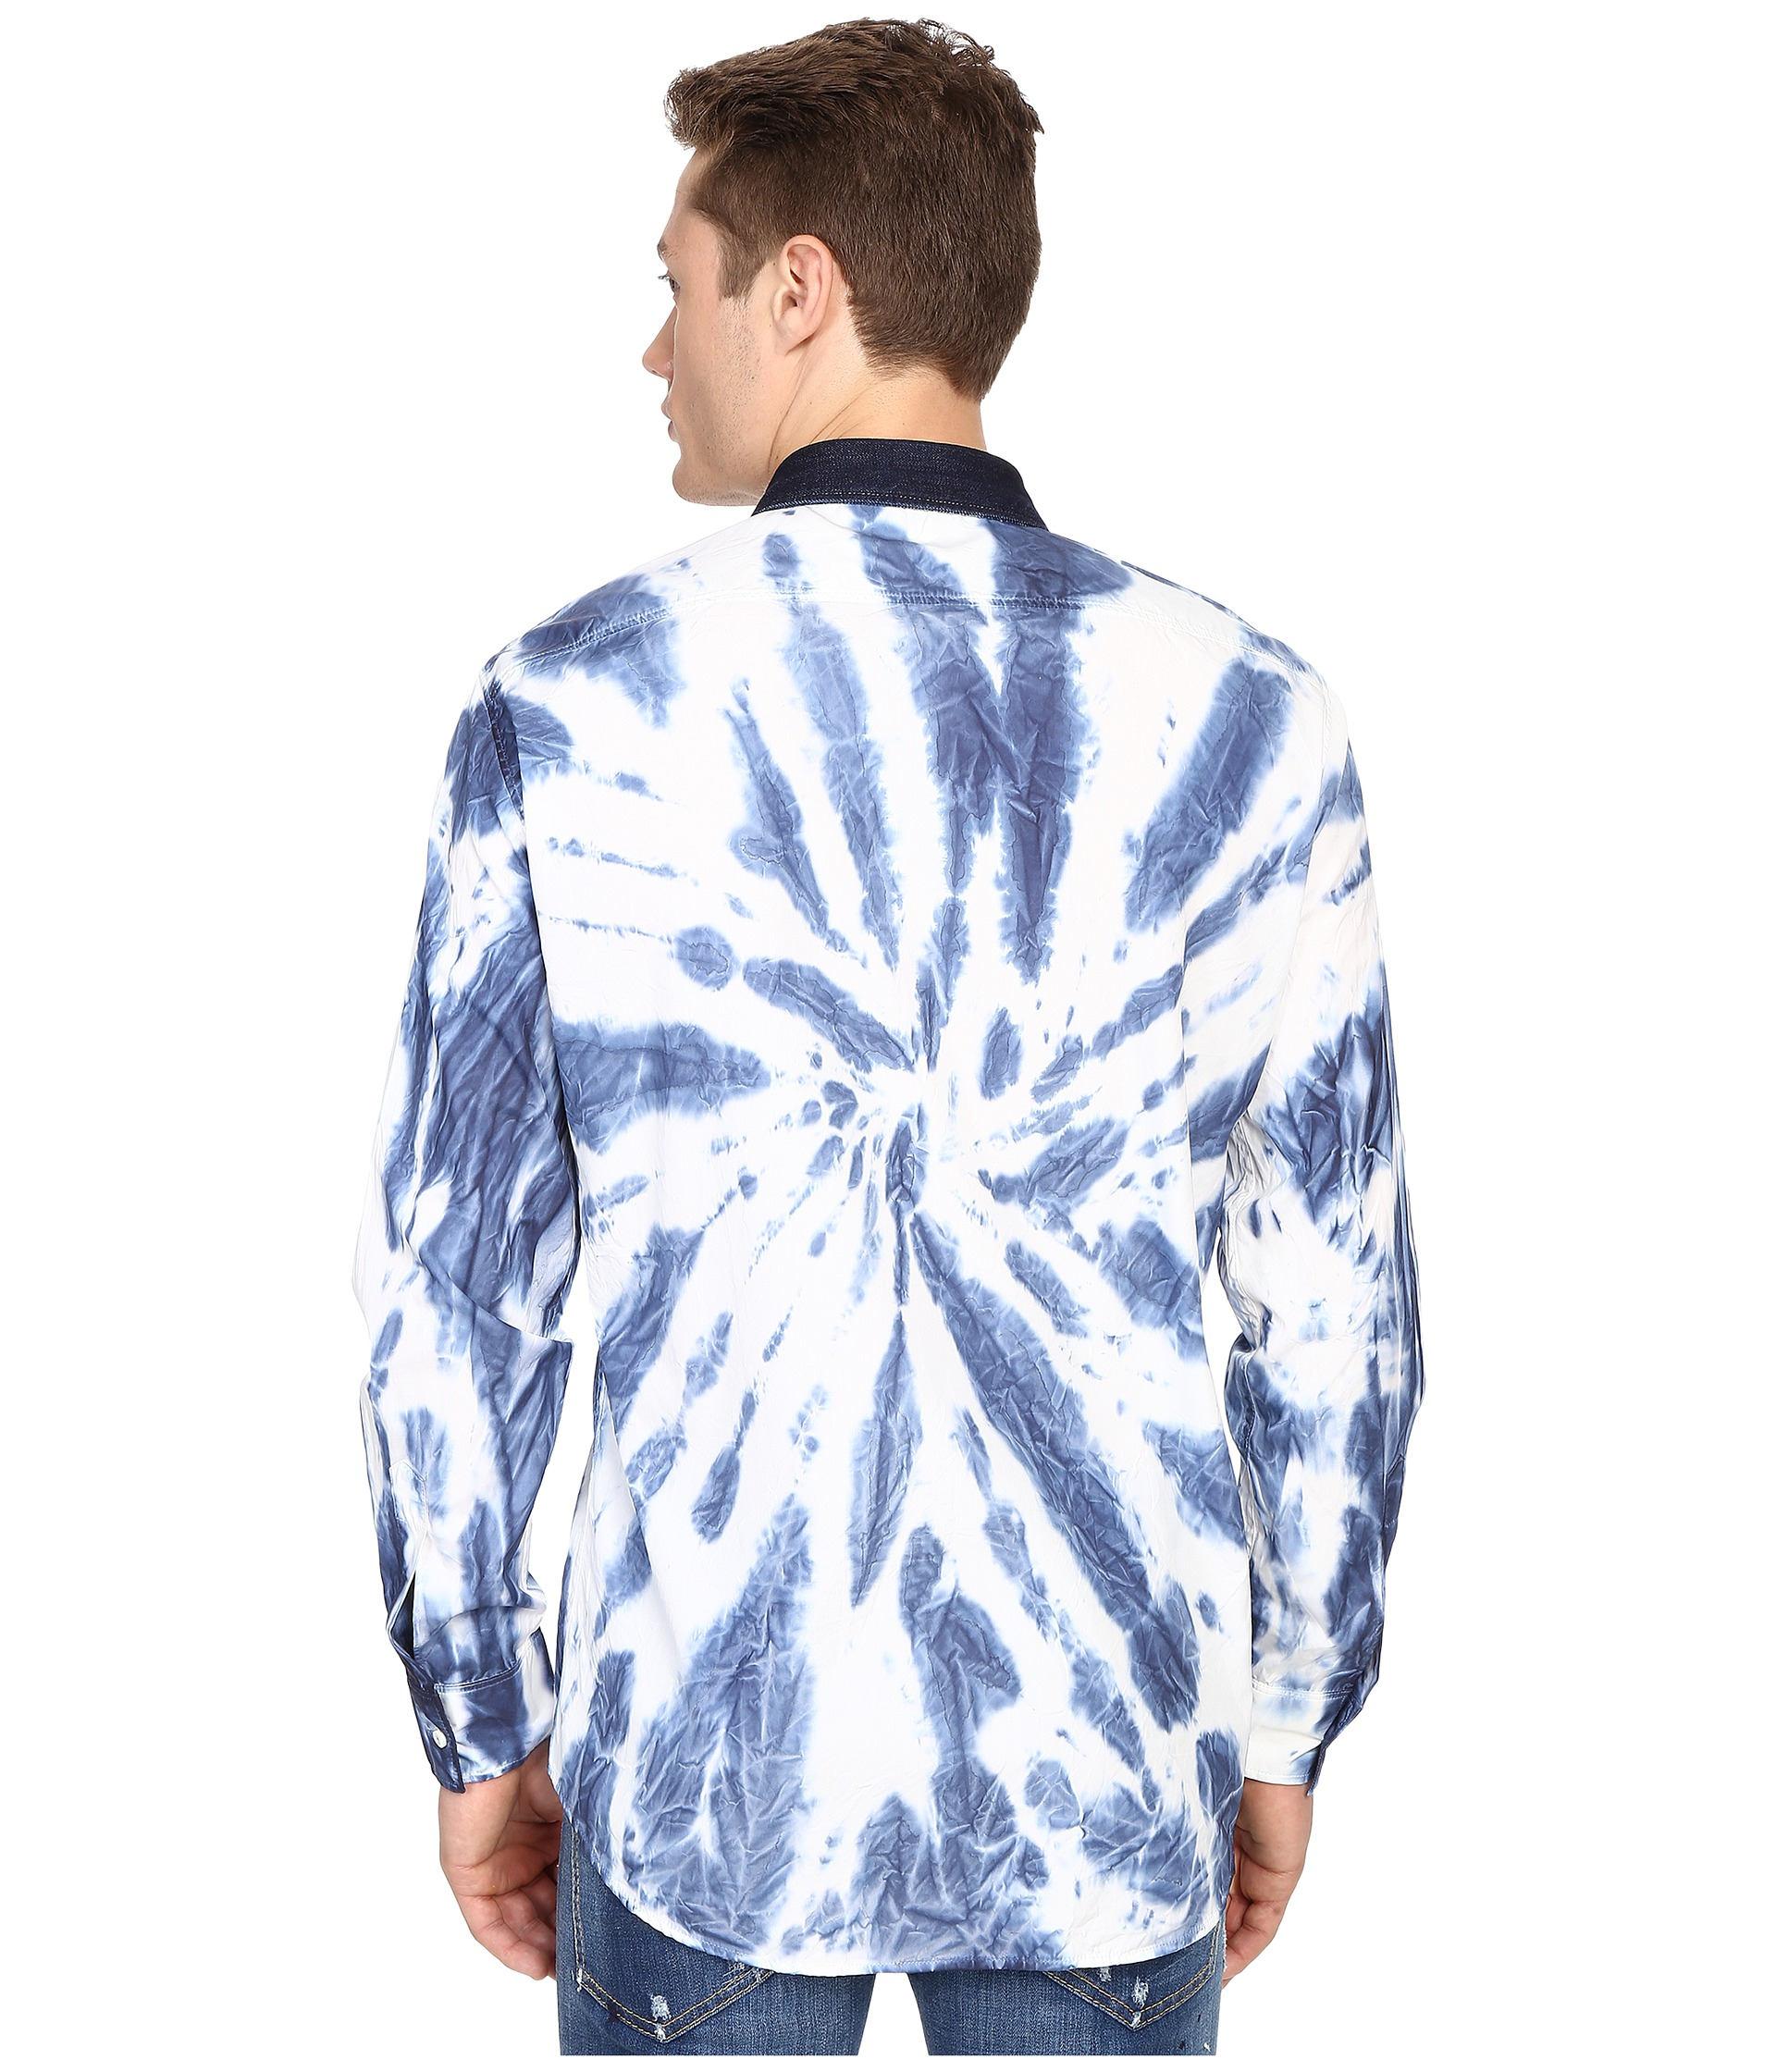 Dsquared tie dye wash relax dan shirt in white for men lyst for How to wash tie dye shirt after dying